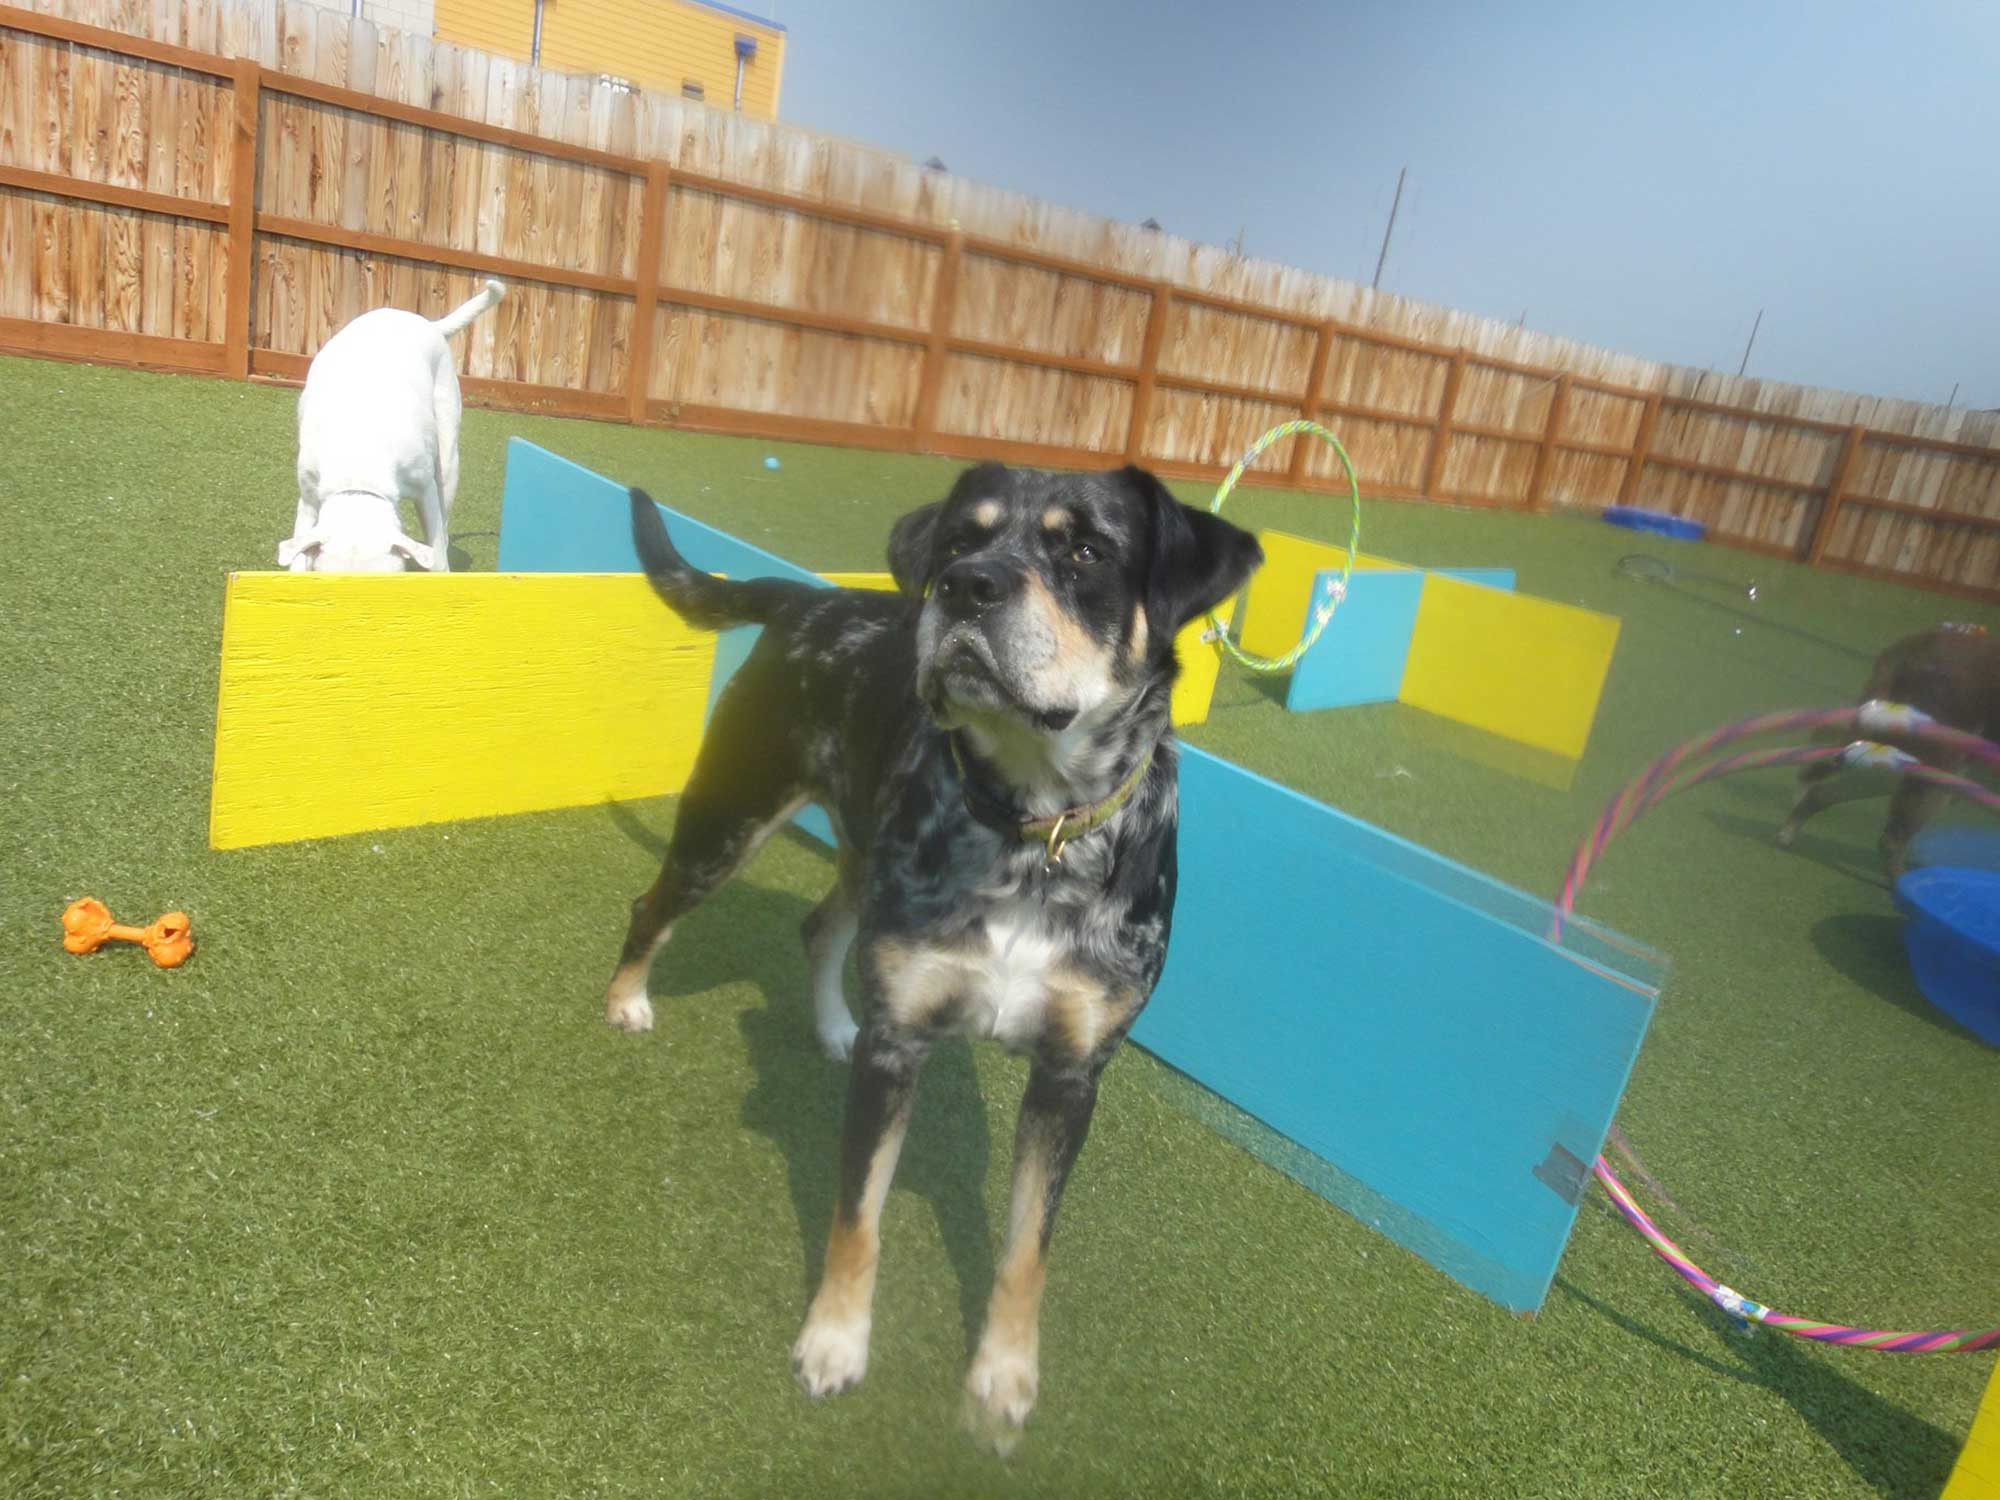 Doggy Daycare, Dog Boarding & Grooming | Bozeman, MT